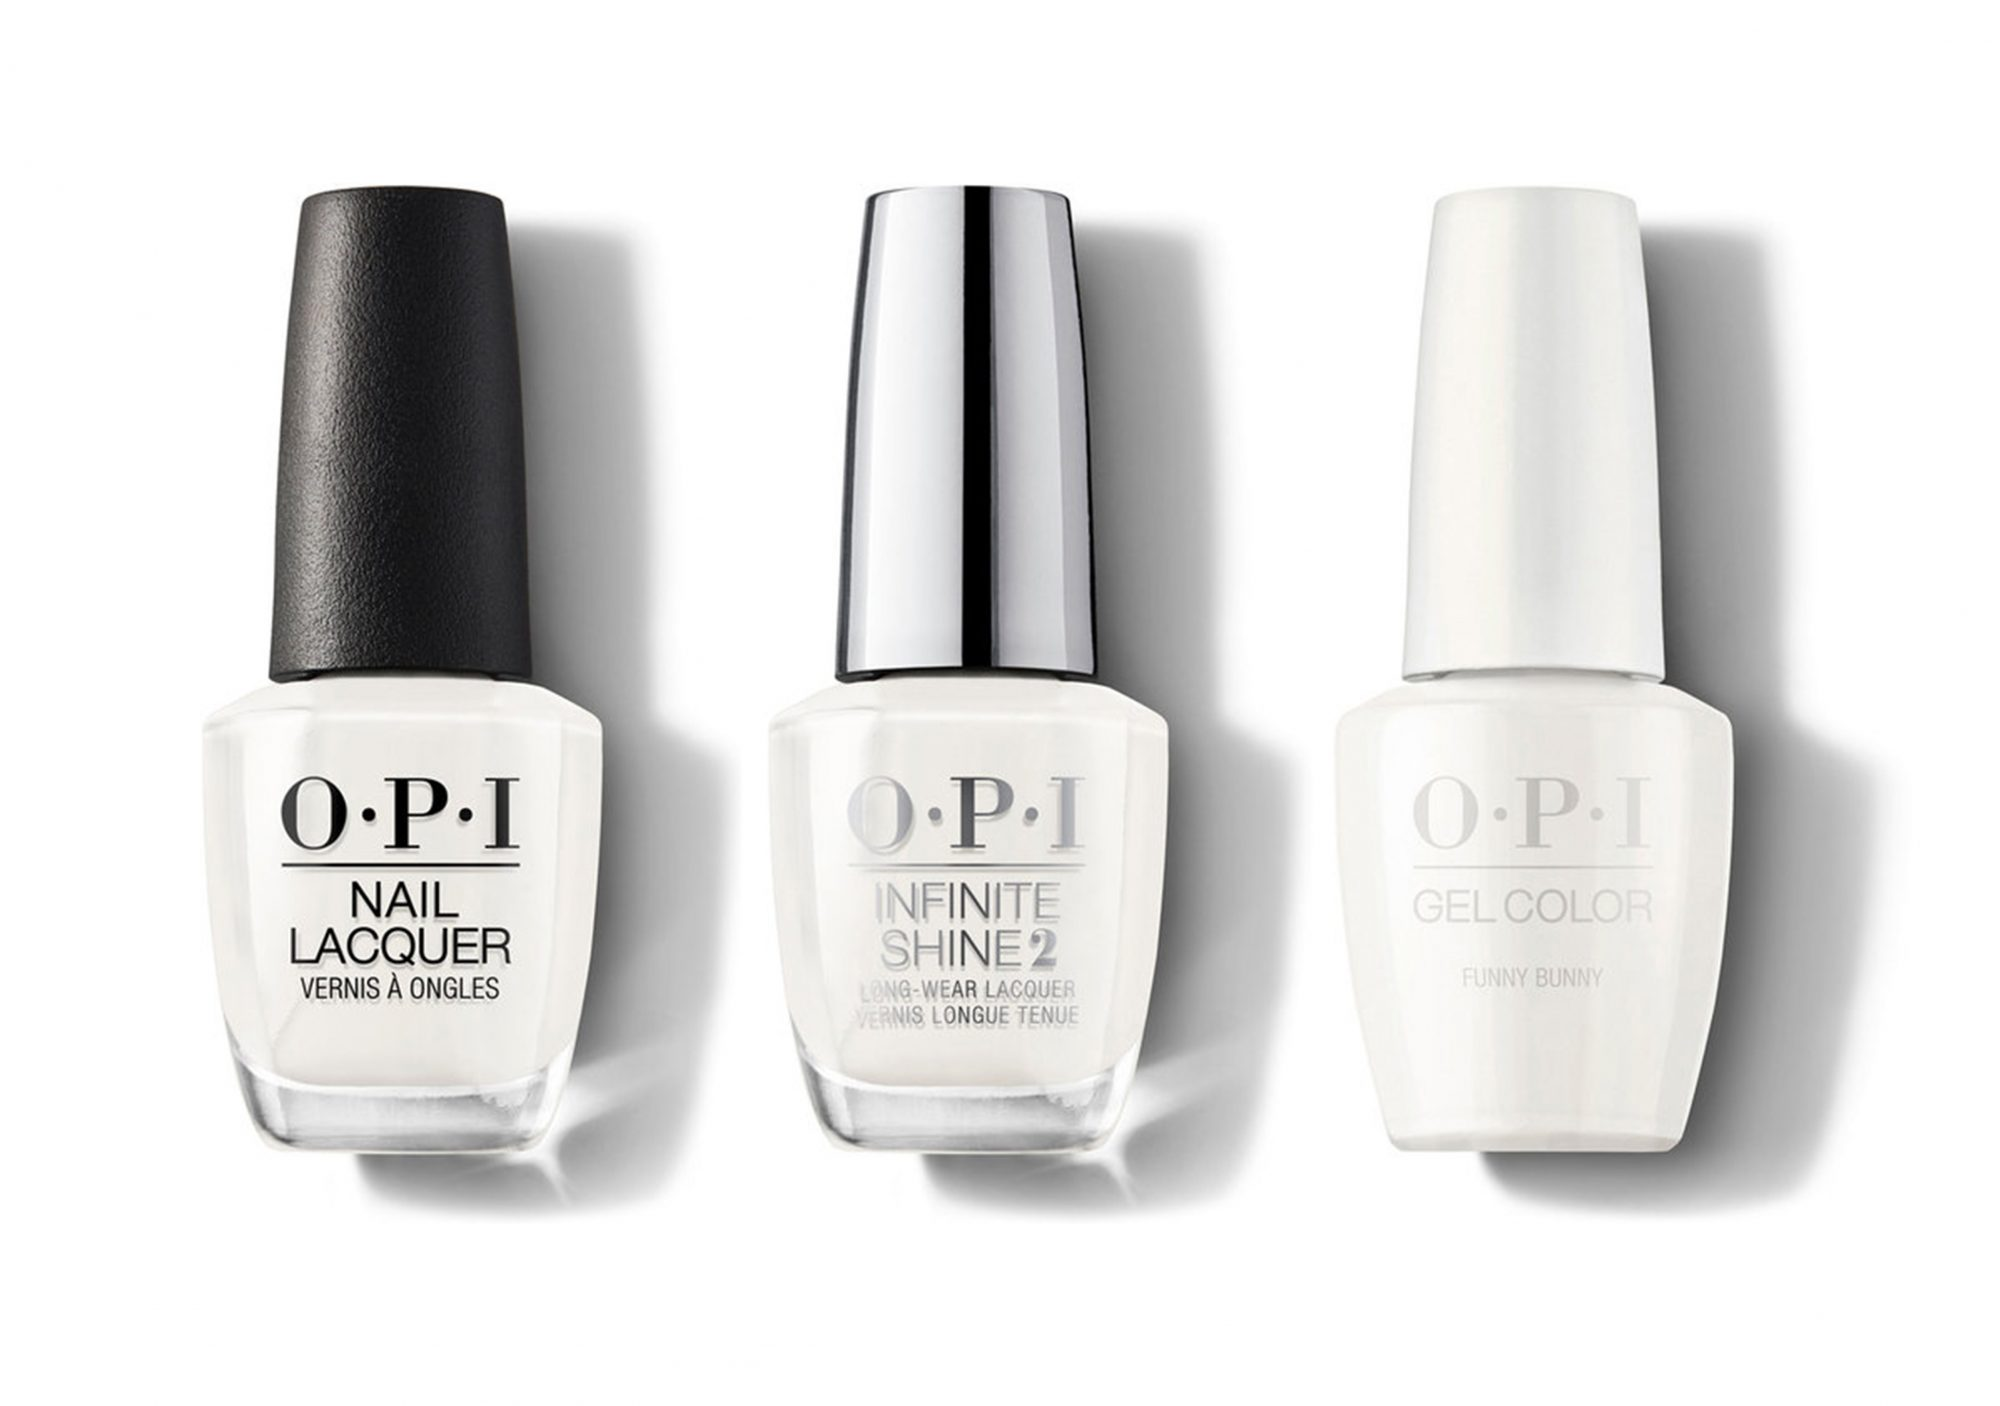 OPI Funny Bunny Might Not Get All the Attention, But It's Way More Fun Than Ballet Slipper